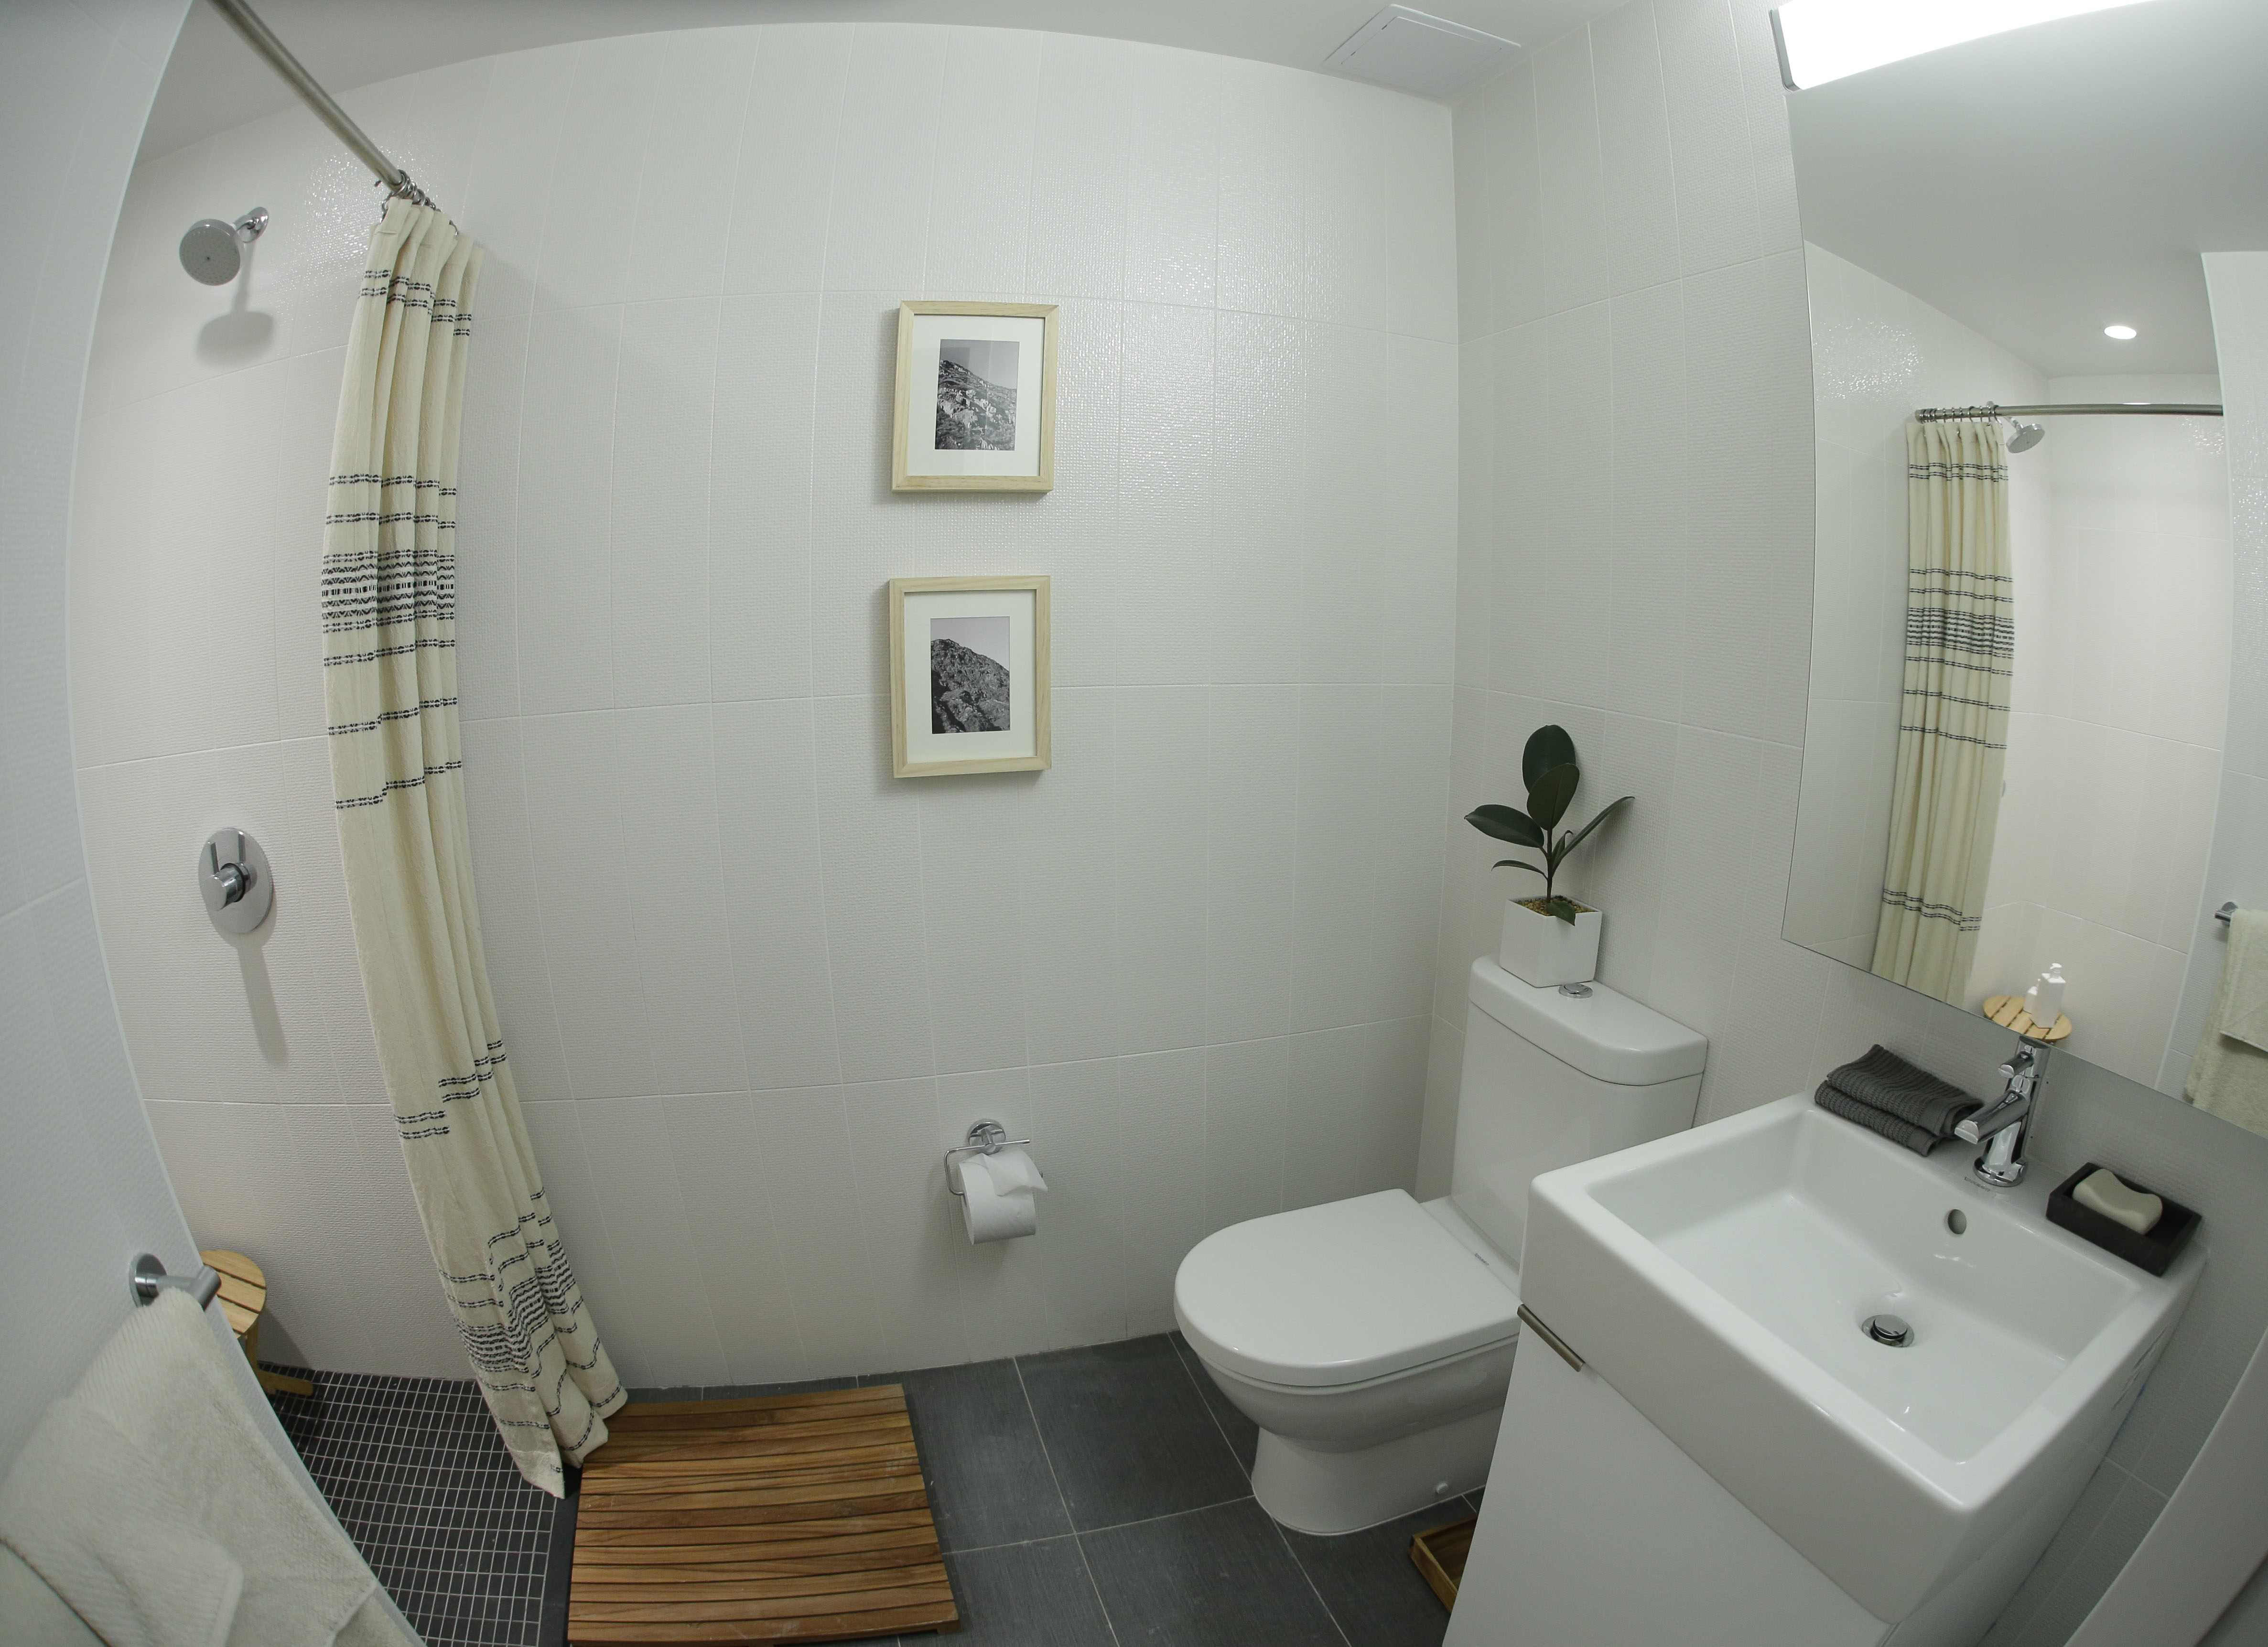 Apartments inside bathroom - In This Dec 22 2015 Photo Small Decorations Complete The Look Of